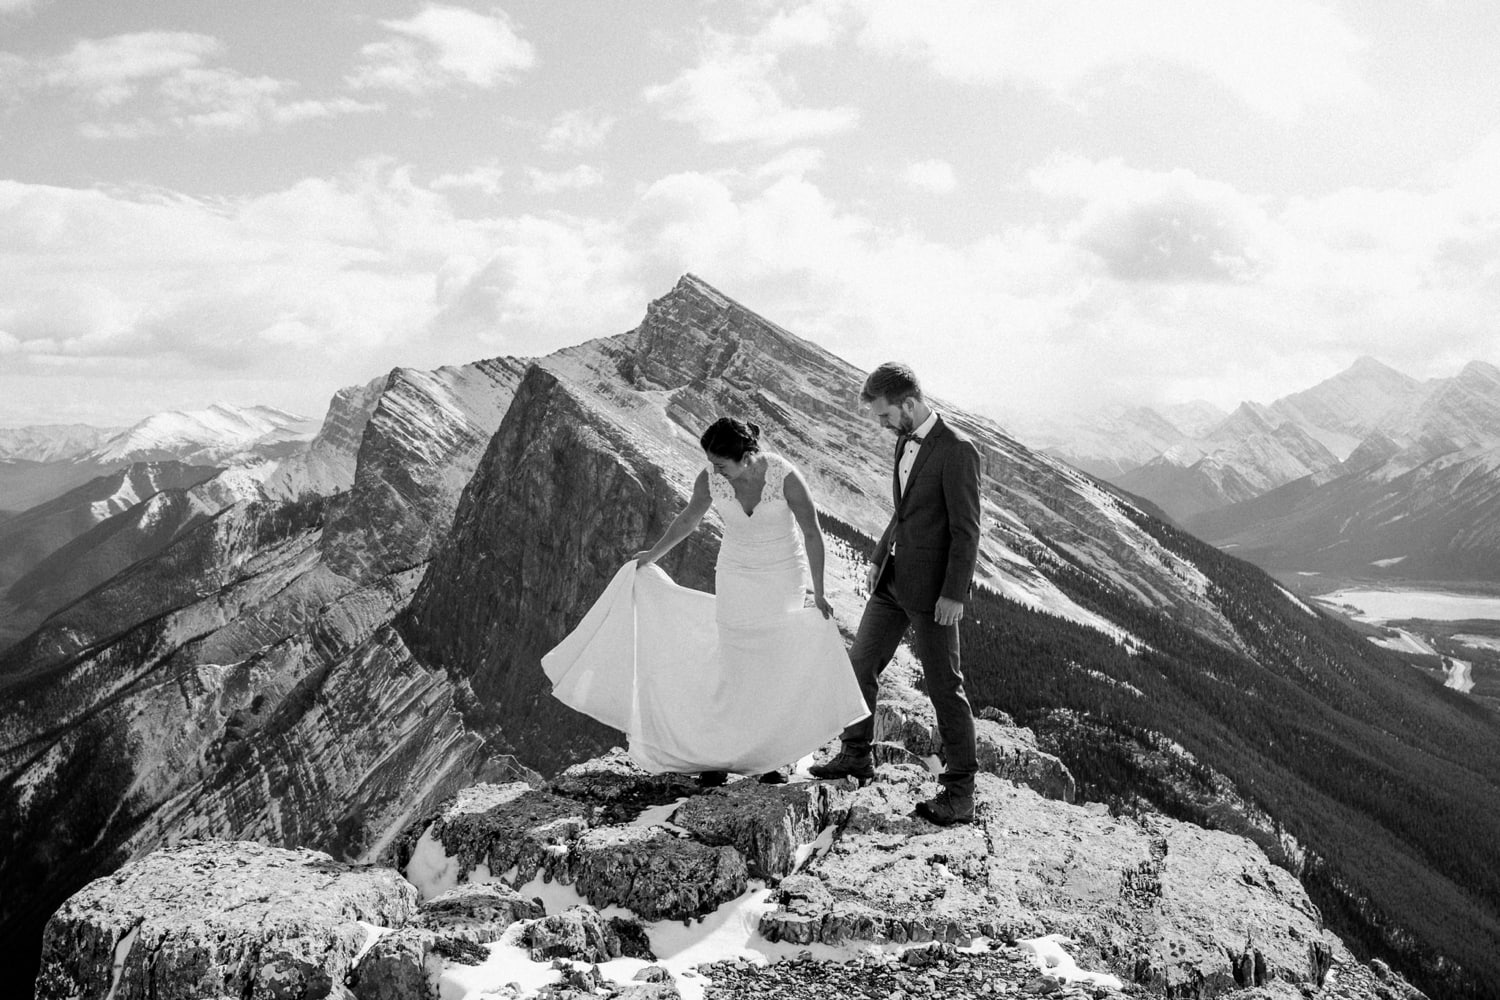 A black and white photo of a couple in wedding attire standing atop a mountain in